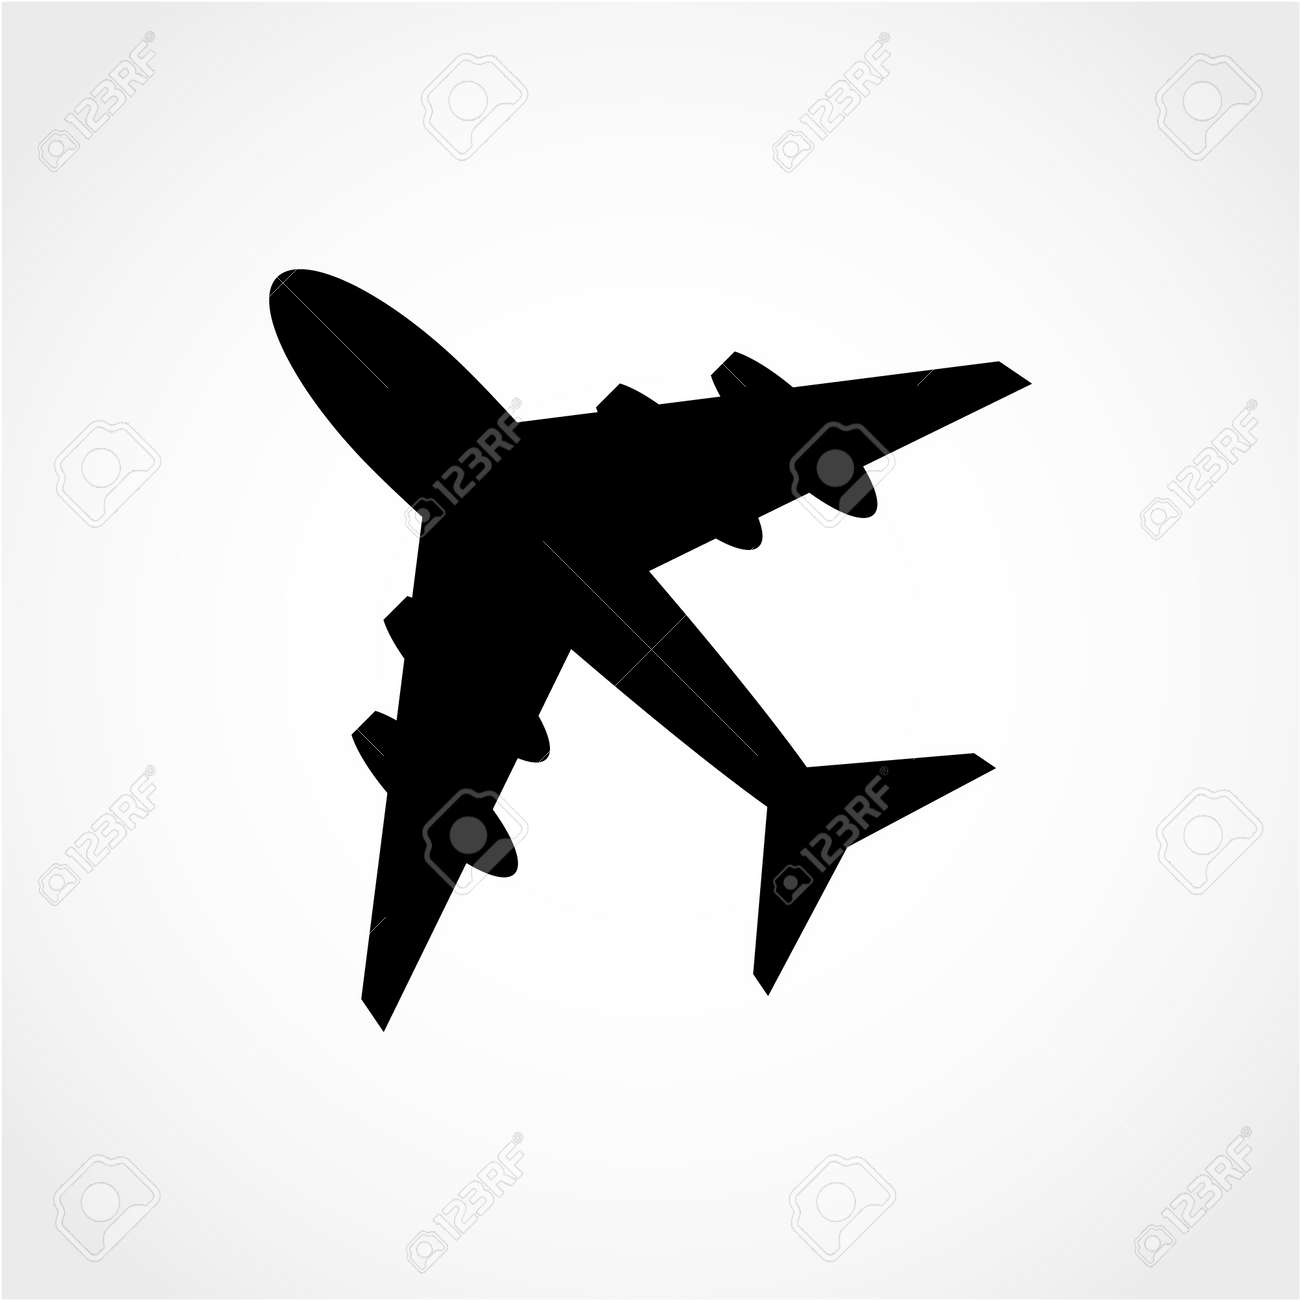 Plane Icon Isolated On White Background Royalty Free Cliparts Vectors And Stock Illustration Image 50994548